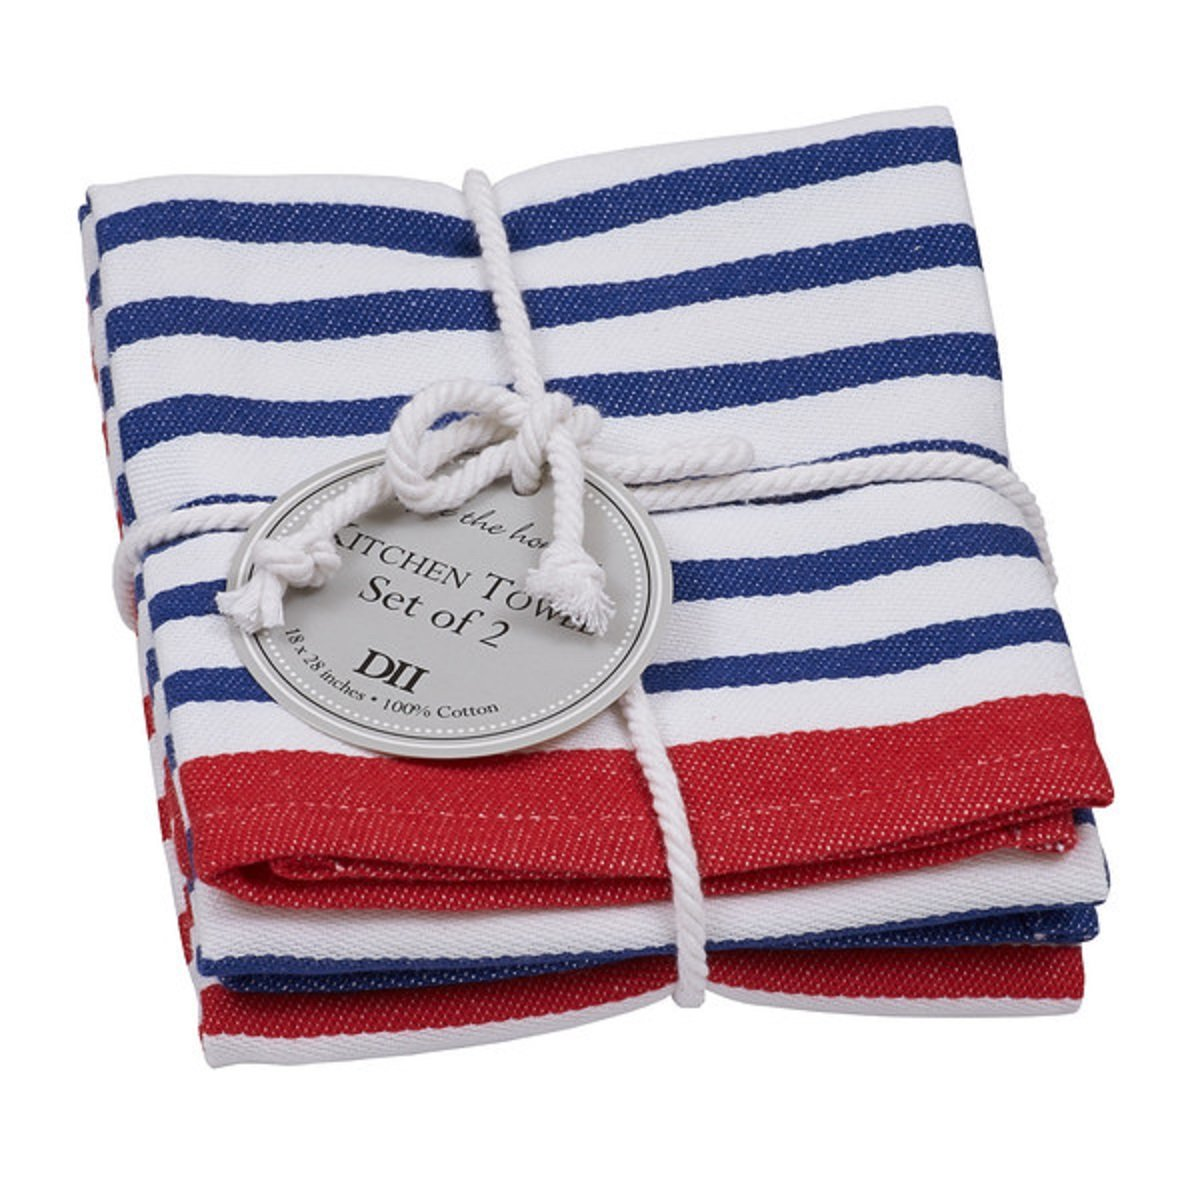 DII Design Imports Nautical Striped Dishtowel Set of 2 One of Each Stripe Design Tied Together Cotton Rope Hang Tag 18 X 28100/% Cotton Kitchen Towel